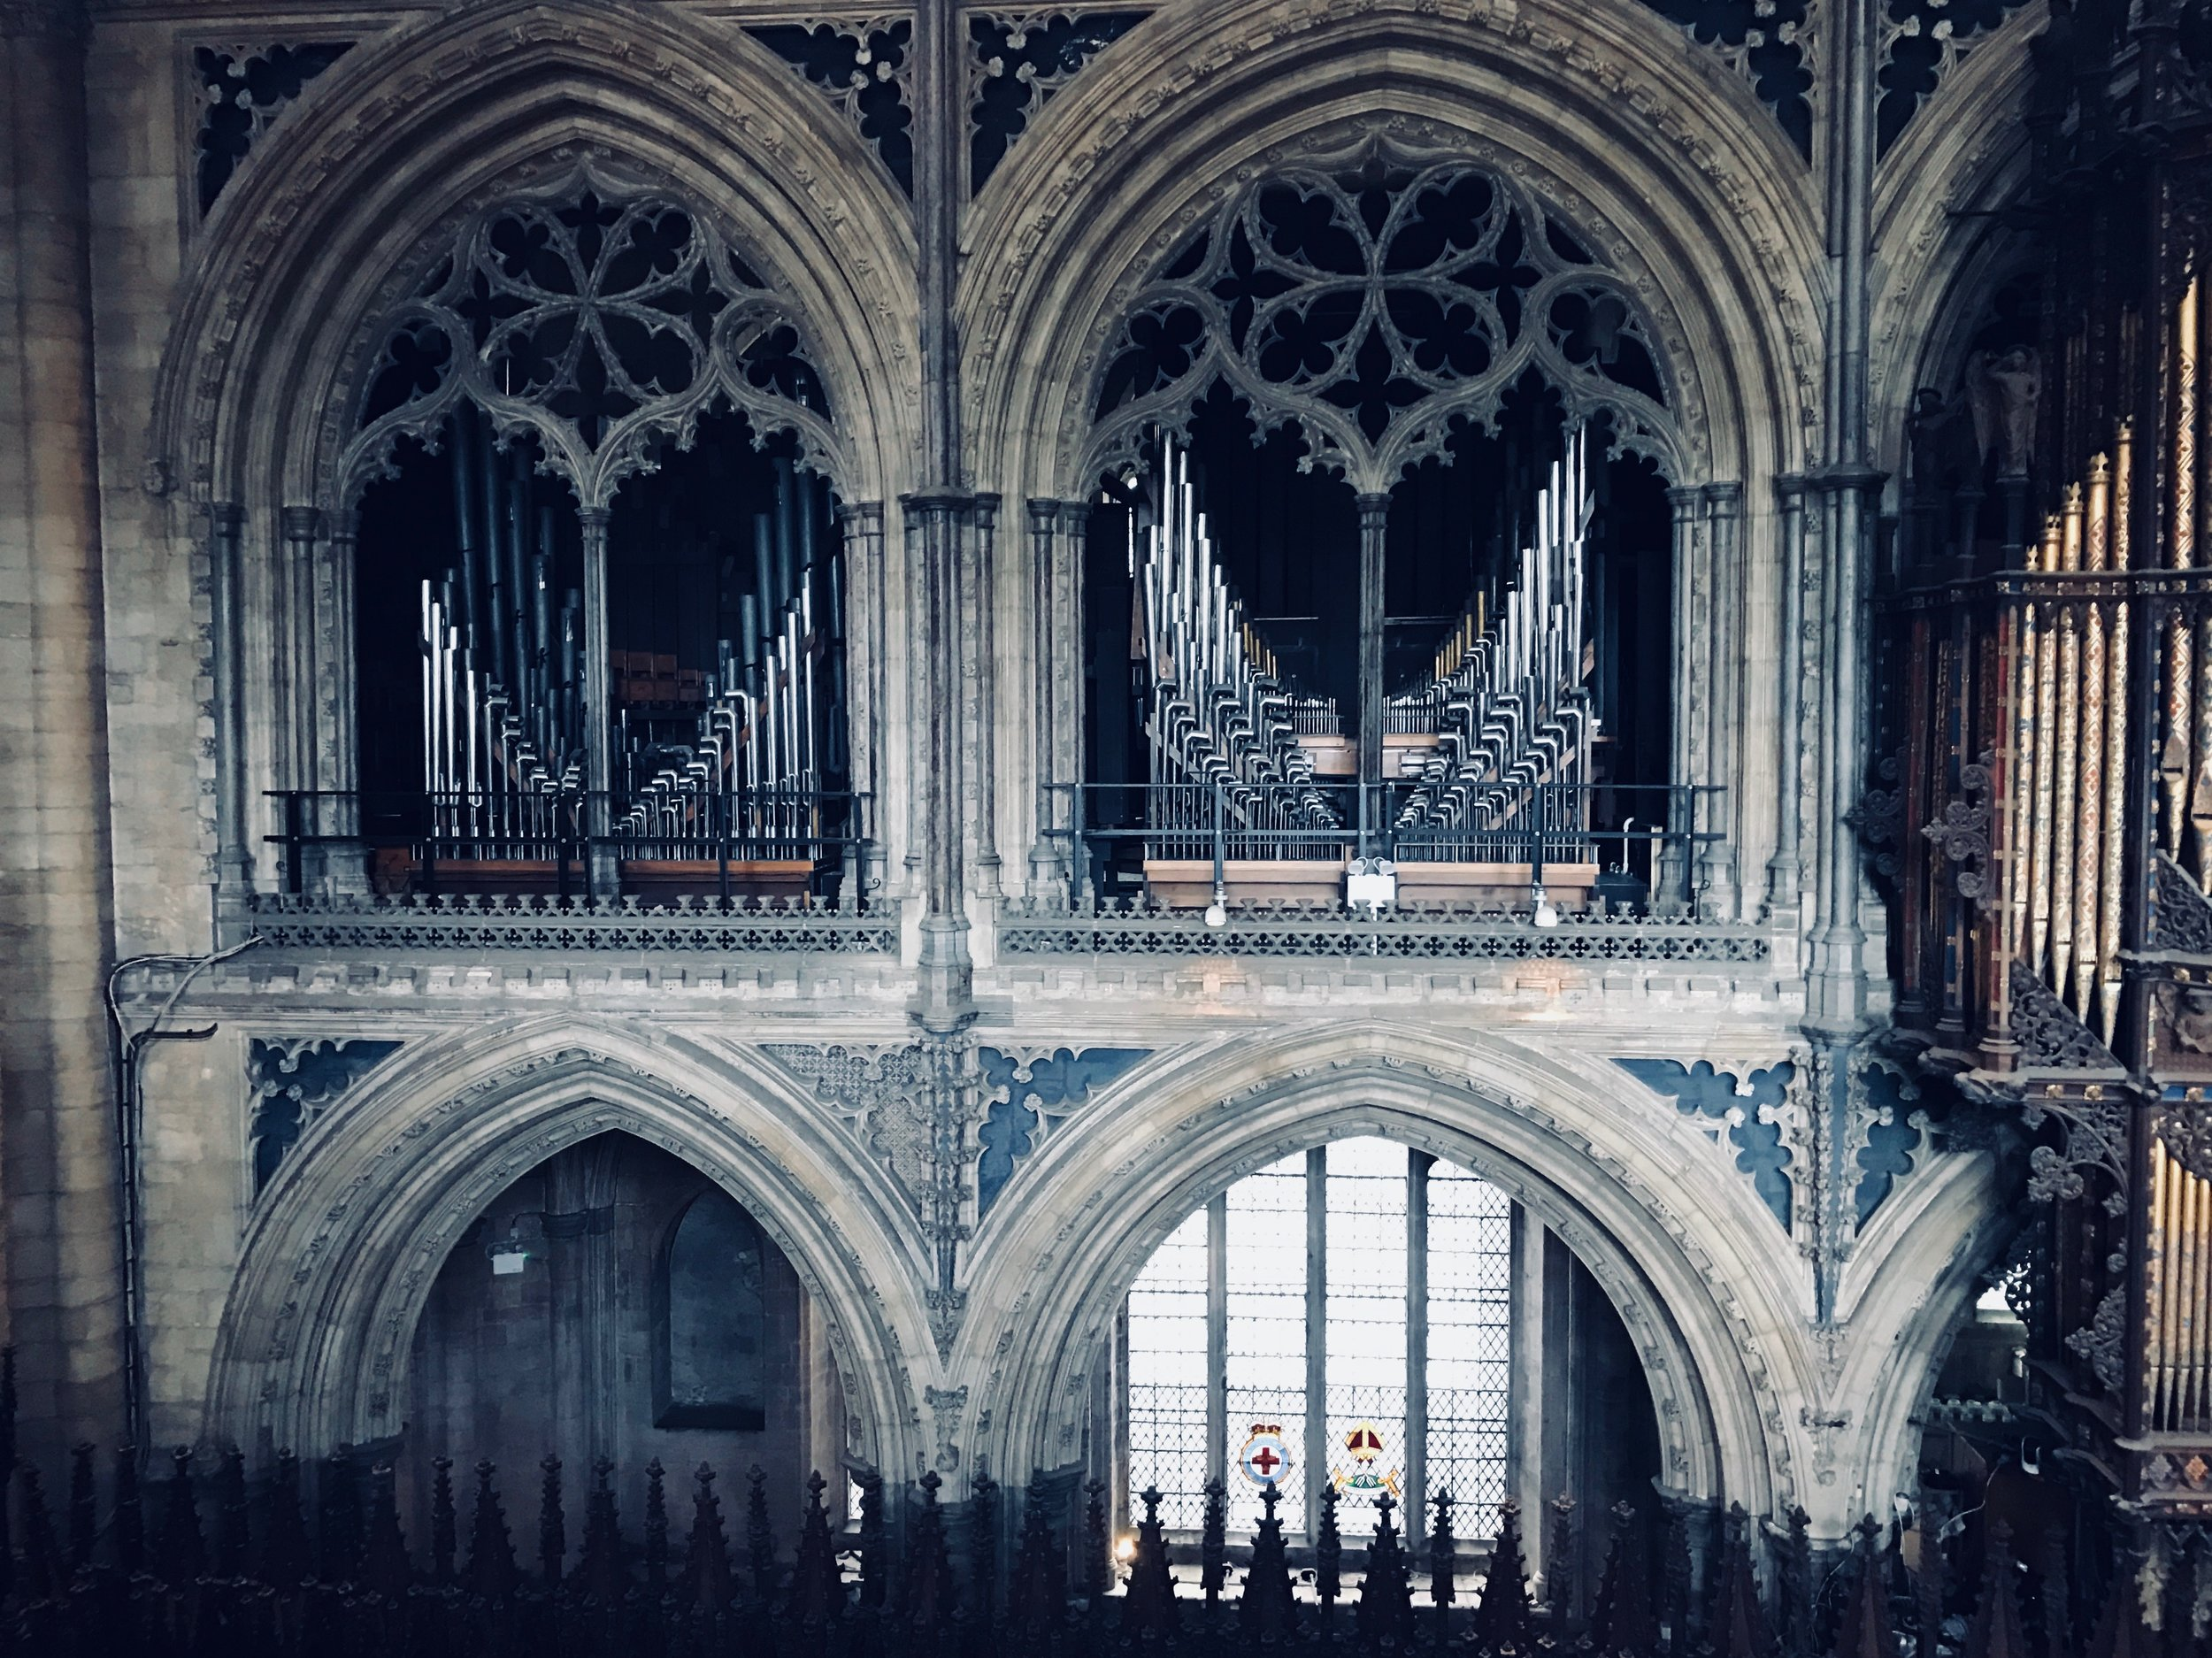 The pipes of the organ at Ely Cathedral are housed in different galleries within the building